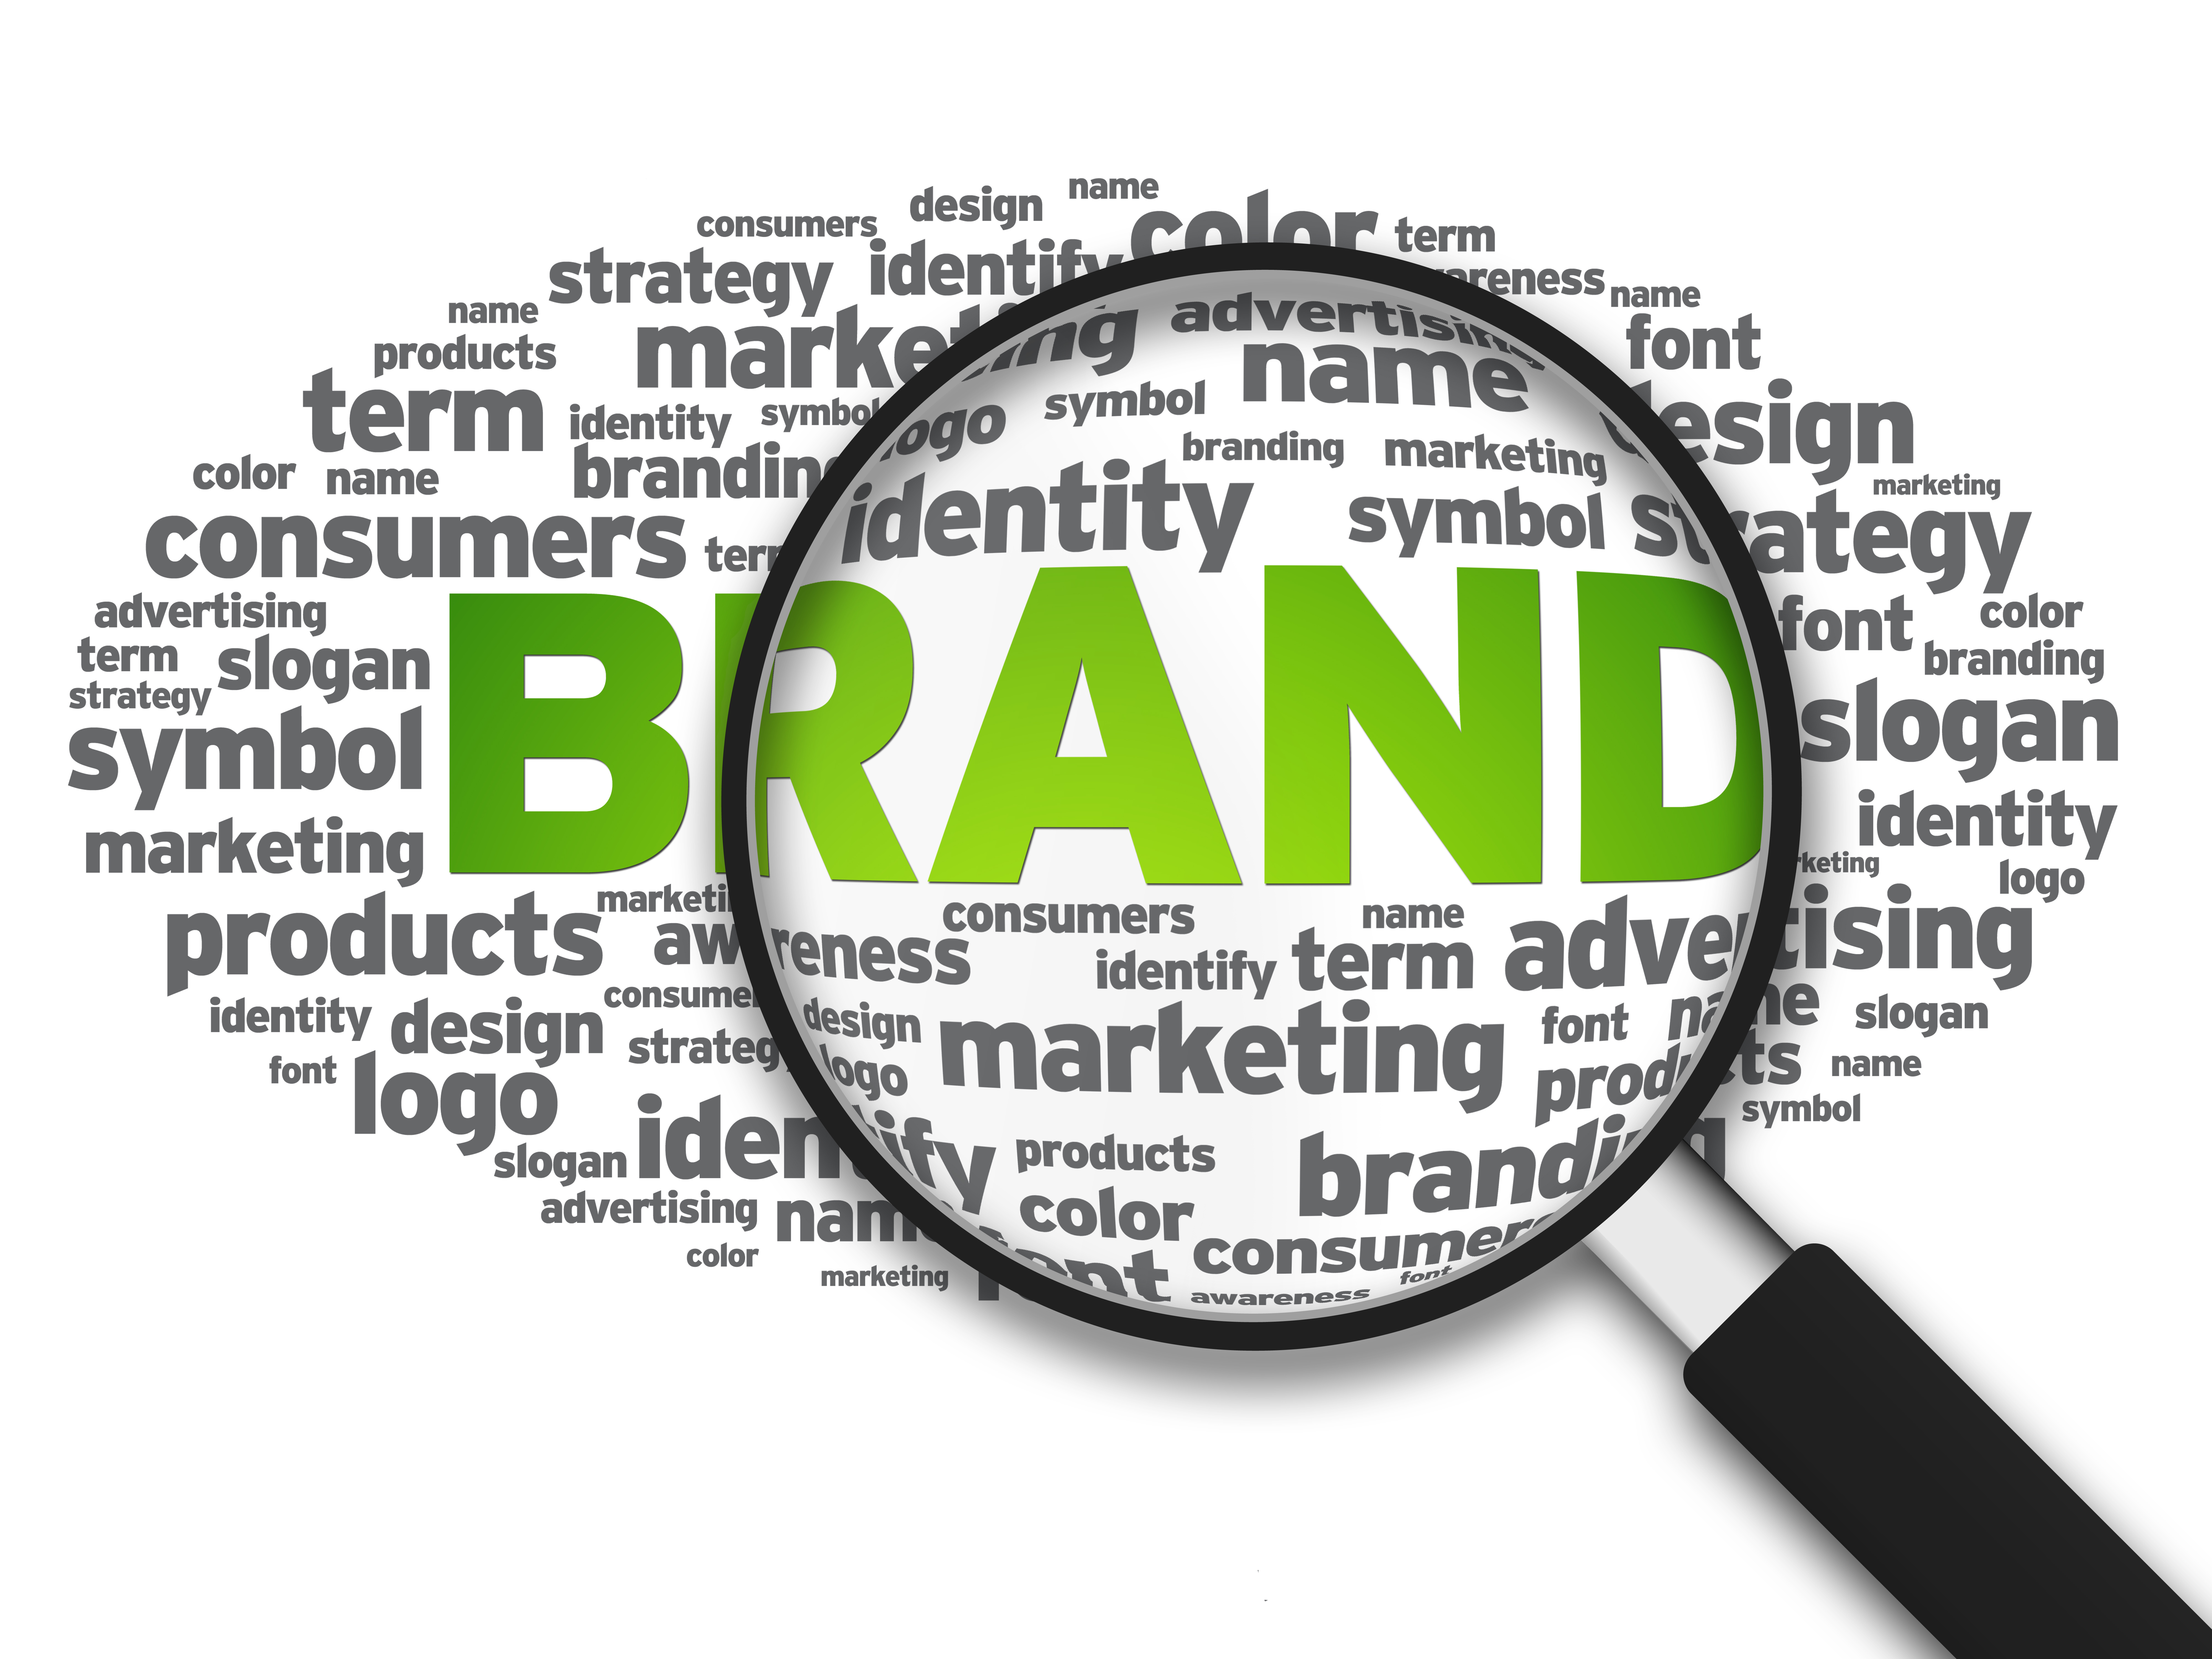 7 Reasons You Should Bid on Your Brand Name